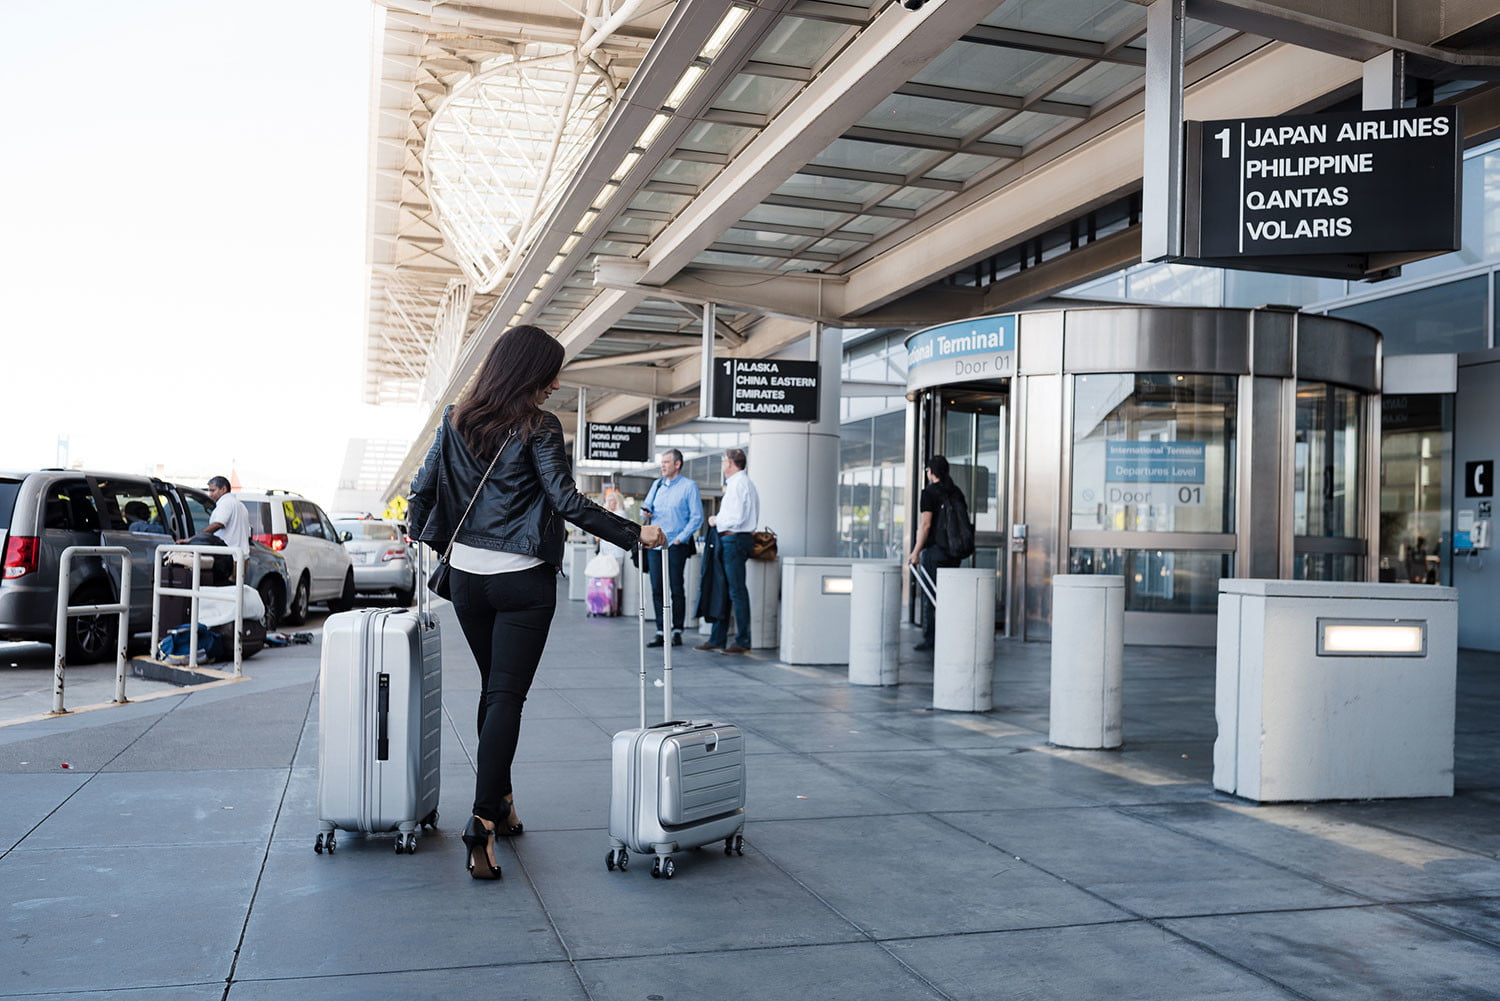 Smart luggage does it all with wireless charger, built-in scale, GPS tracking